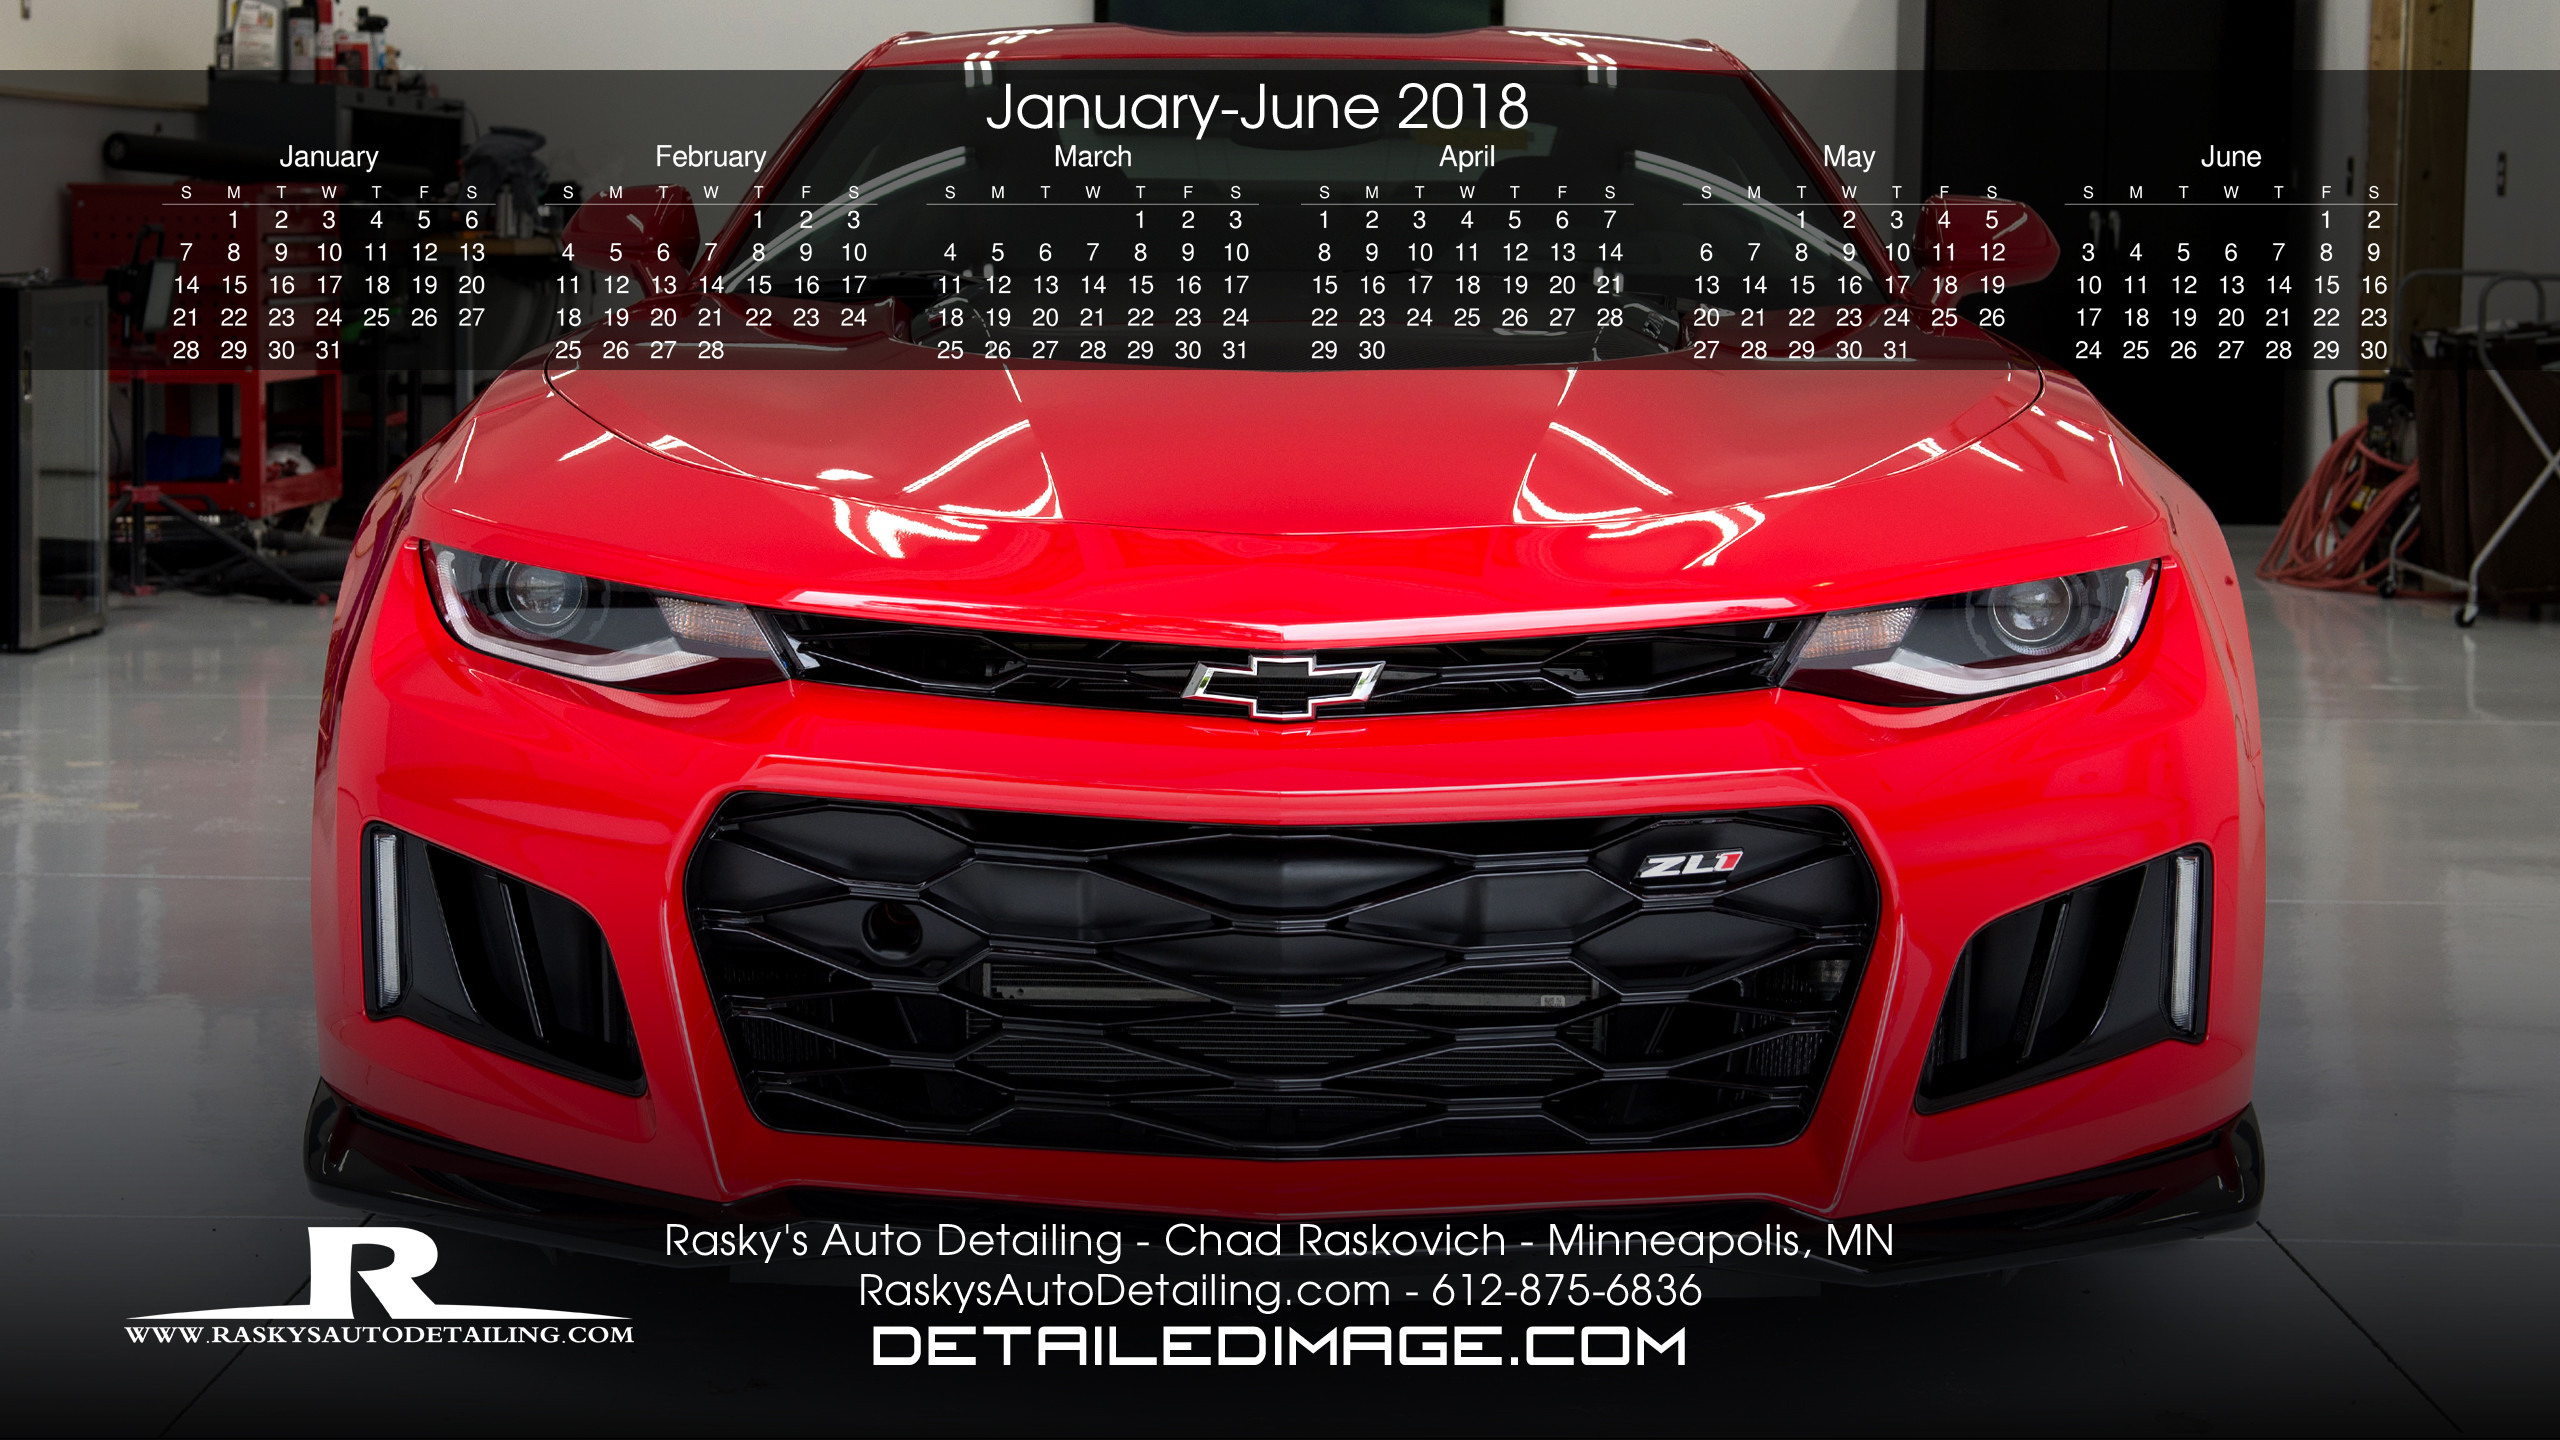 2560x1440 Chad Raskovich 2018 Wallpaper Calendar 1